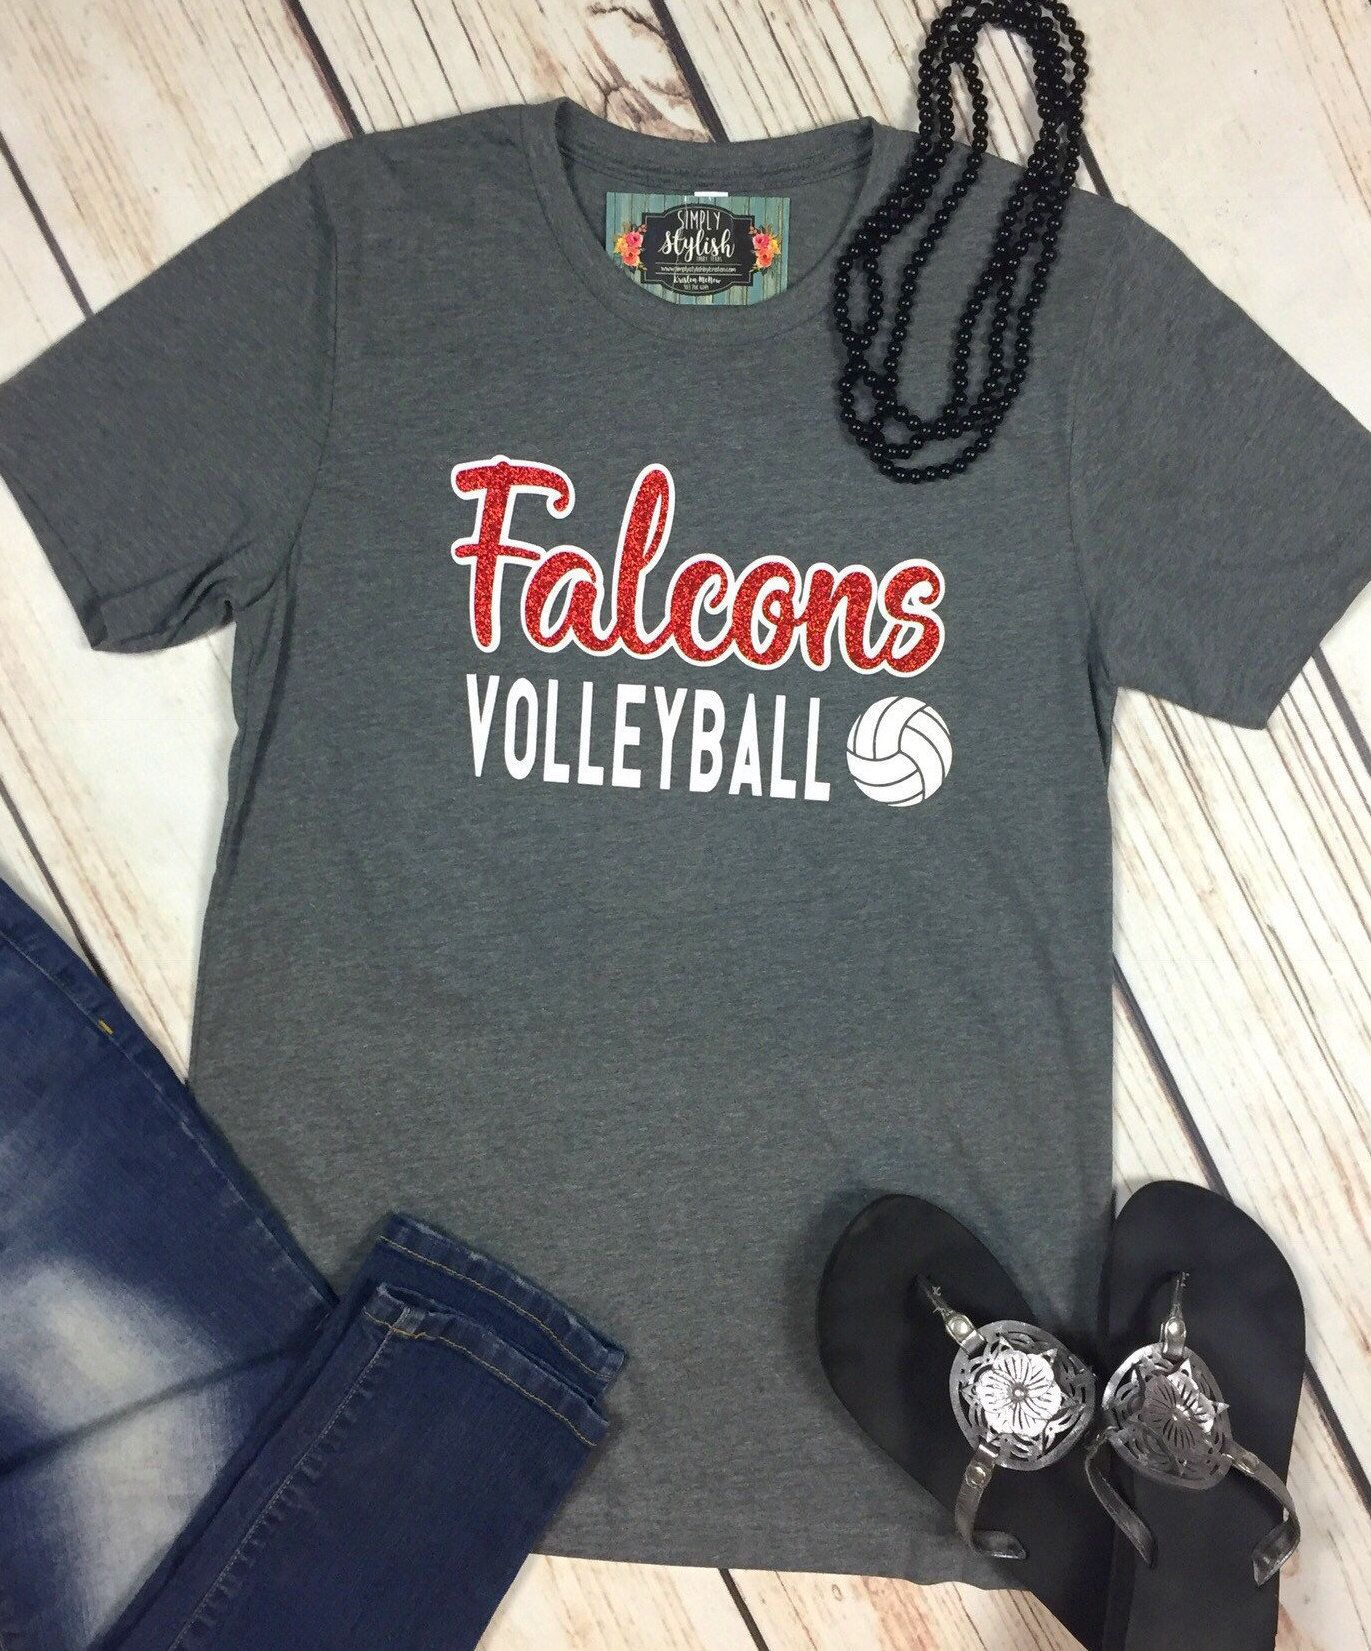 Volleyball T Shirt Volleyball Team Shirt Volleyball Mom Personalized Volleyball Tee Custom Volleyball Volleyball Tshirts Volleyball Team Shirts Game Day Shirts